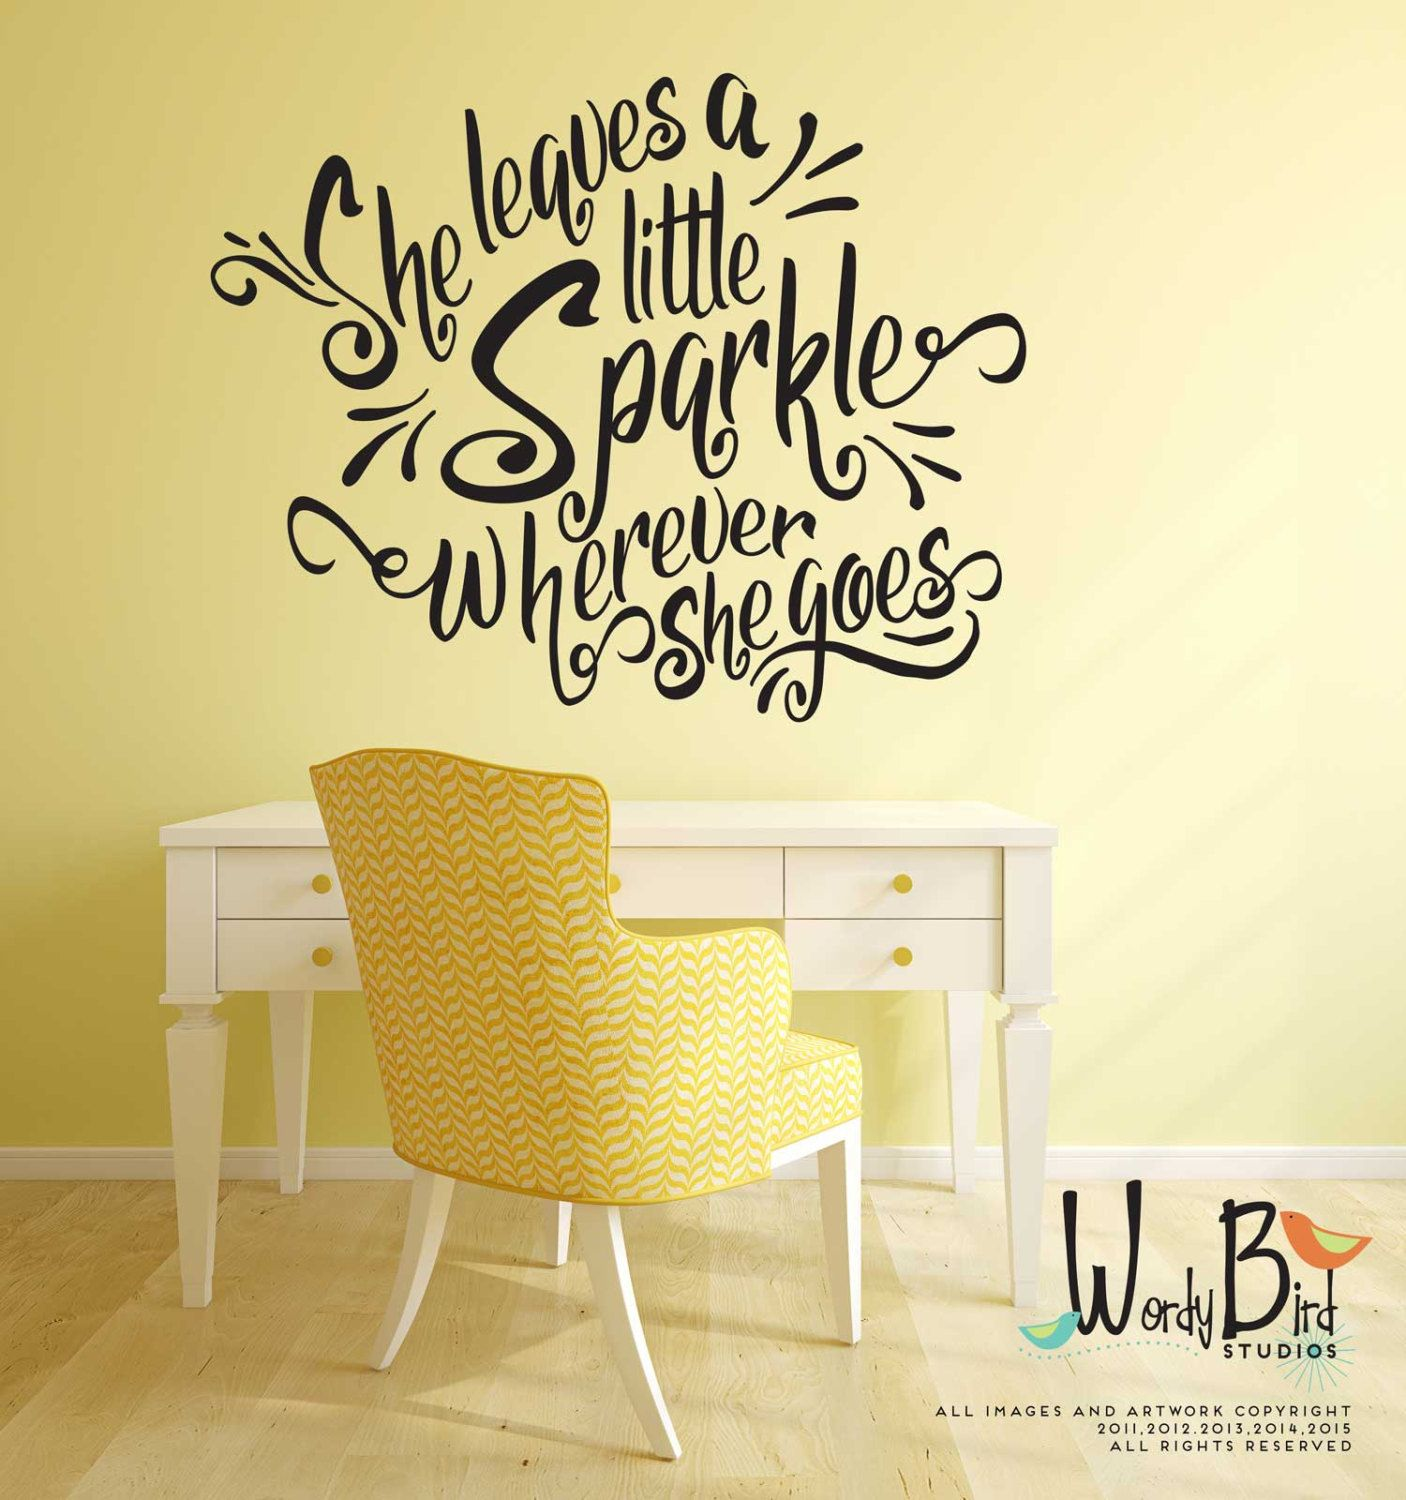 She leaves a little sparkle wherever she goes gold wall decal ...